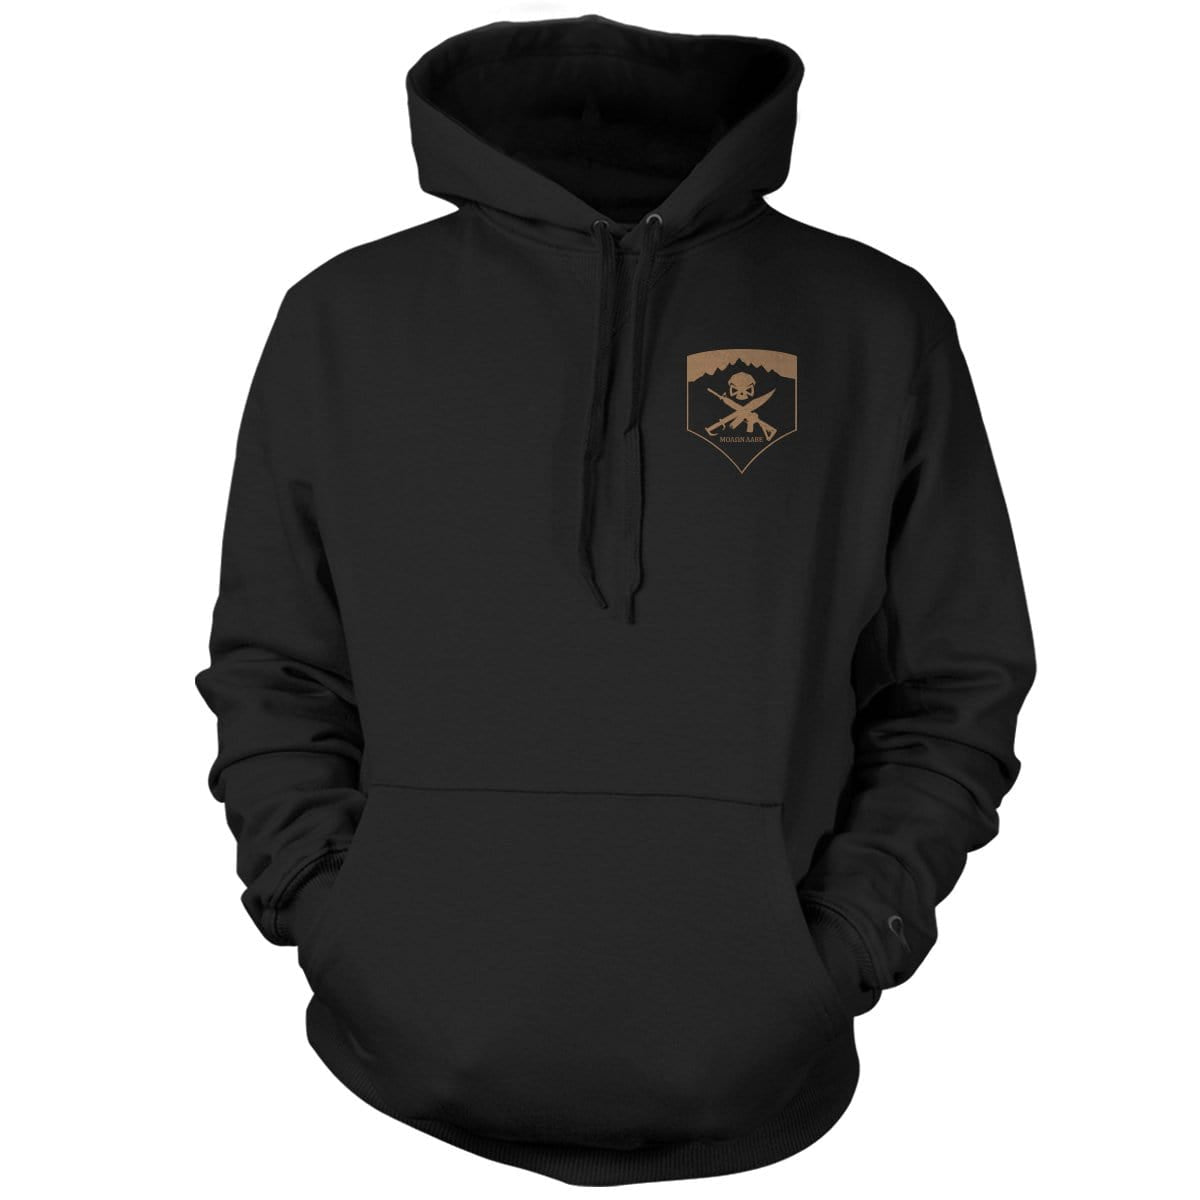 PHUMC Bellatorum Chapter Hoodie - Pipe Hitters Union